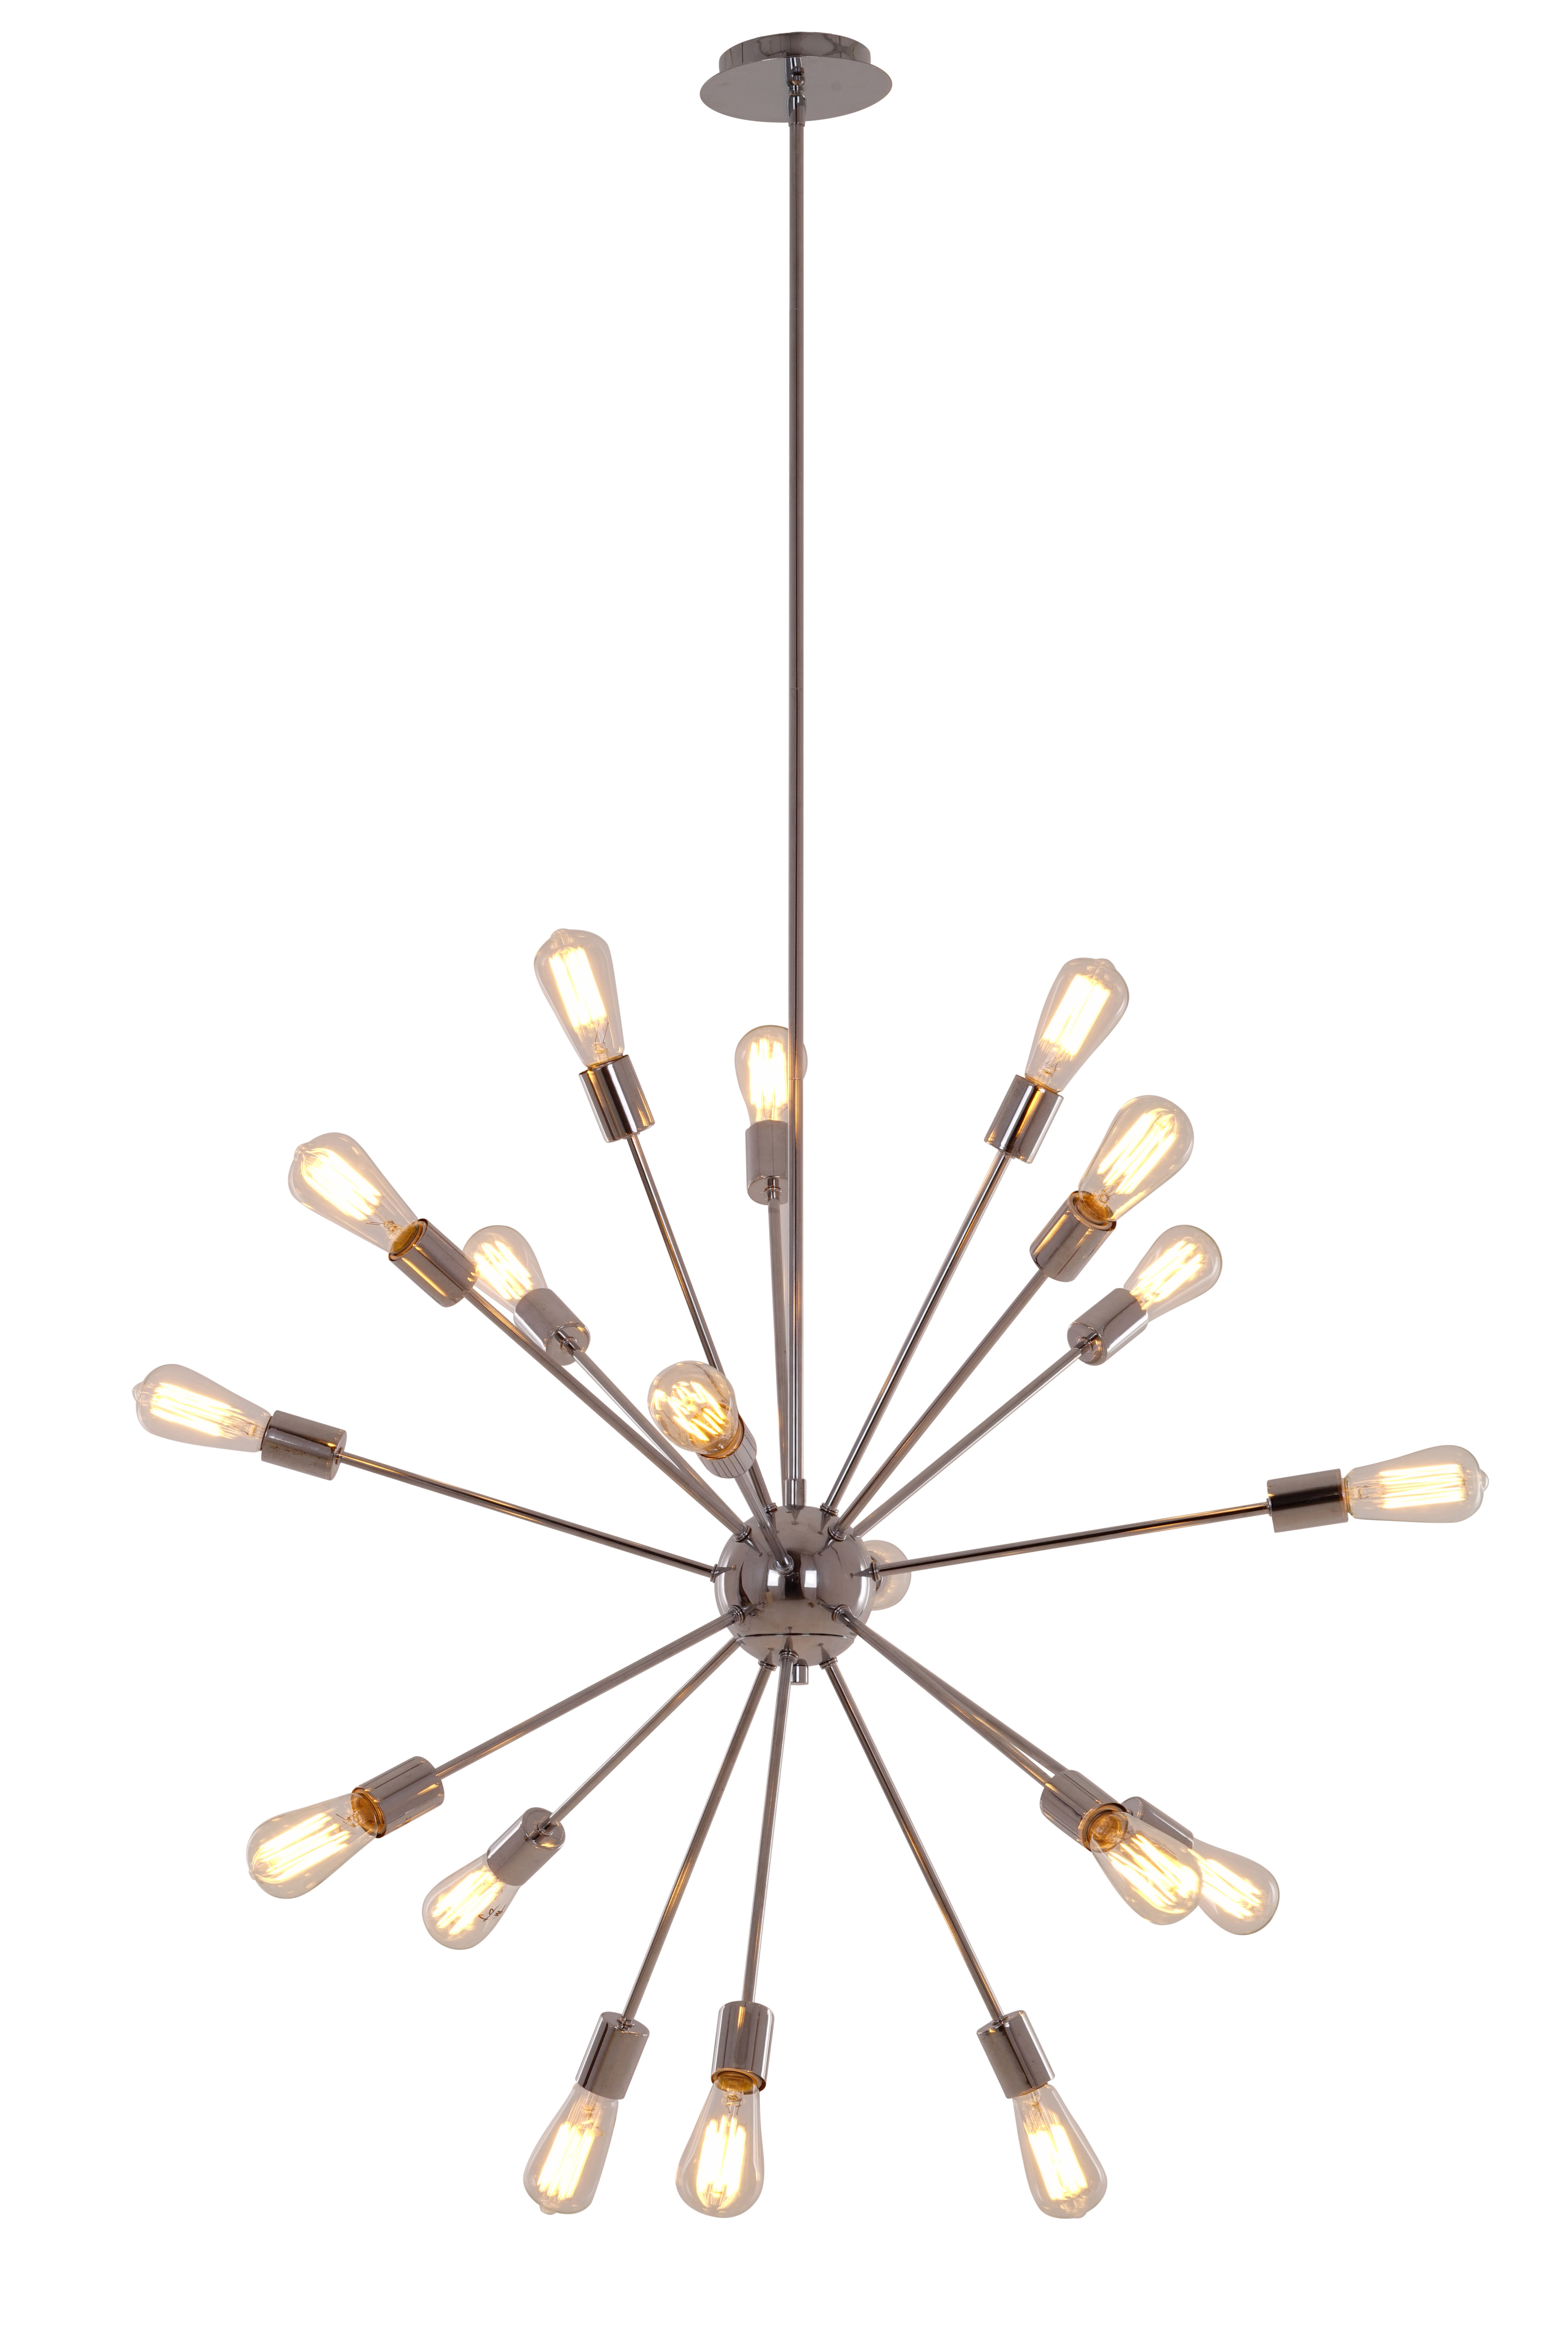 Defreitas 18 Light Sputnik Chandeliers For 2019 Bach 18 Light Chandelier (View 4 of 20)